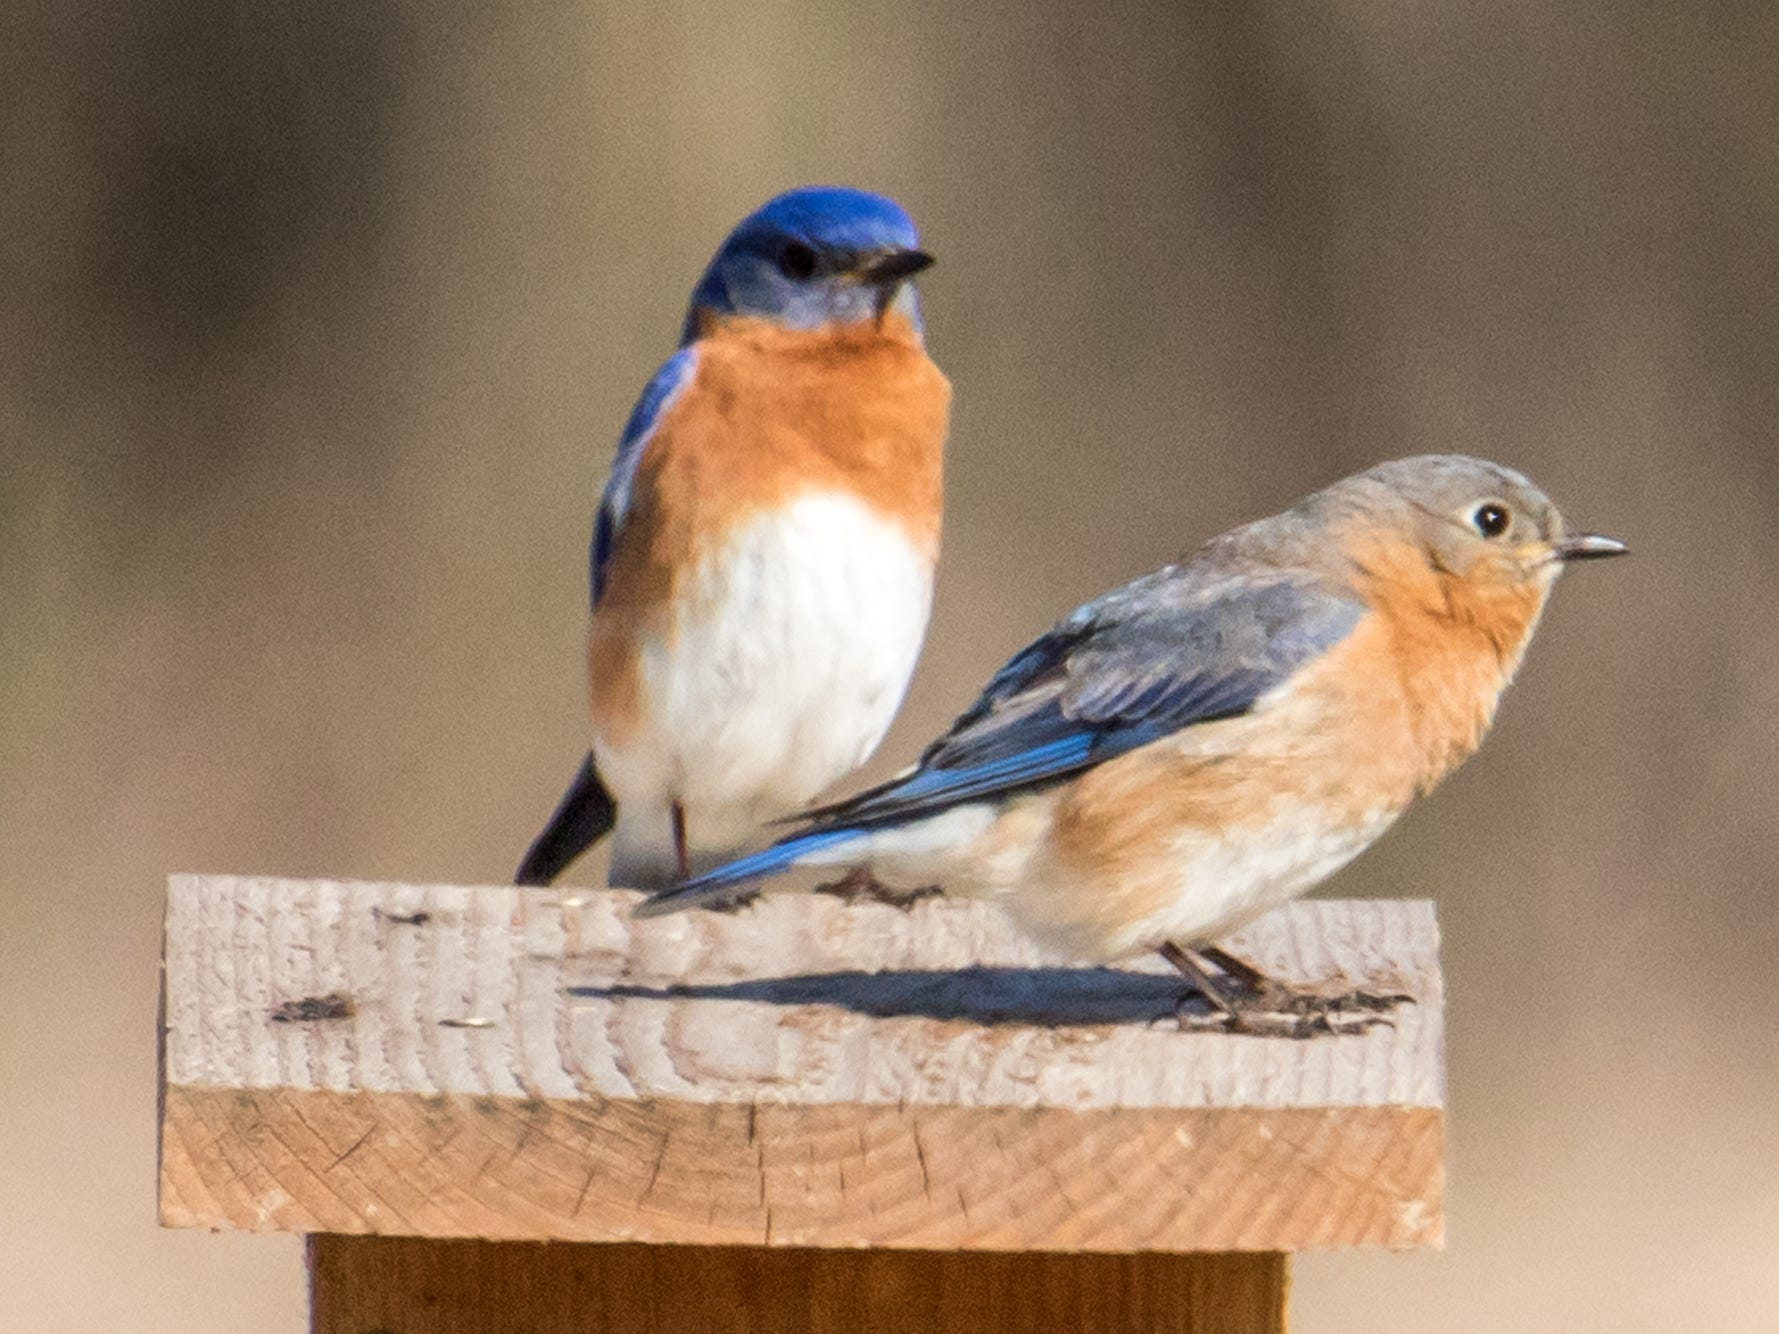 Strikingly-colorful eastern bluebirds benefit immensely from human help with nesting boxes.